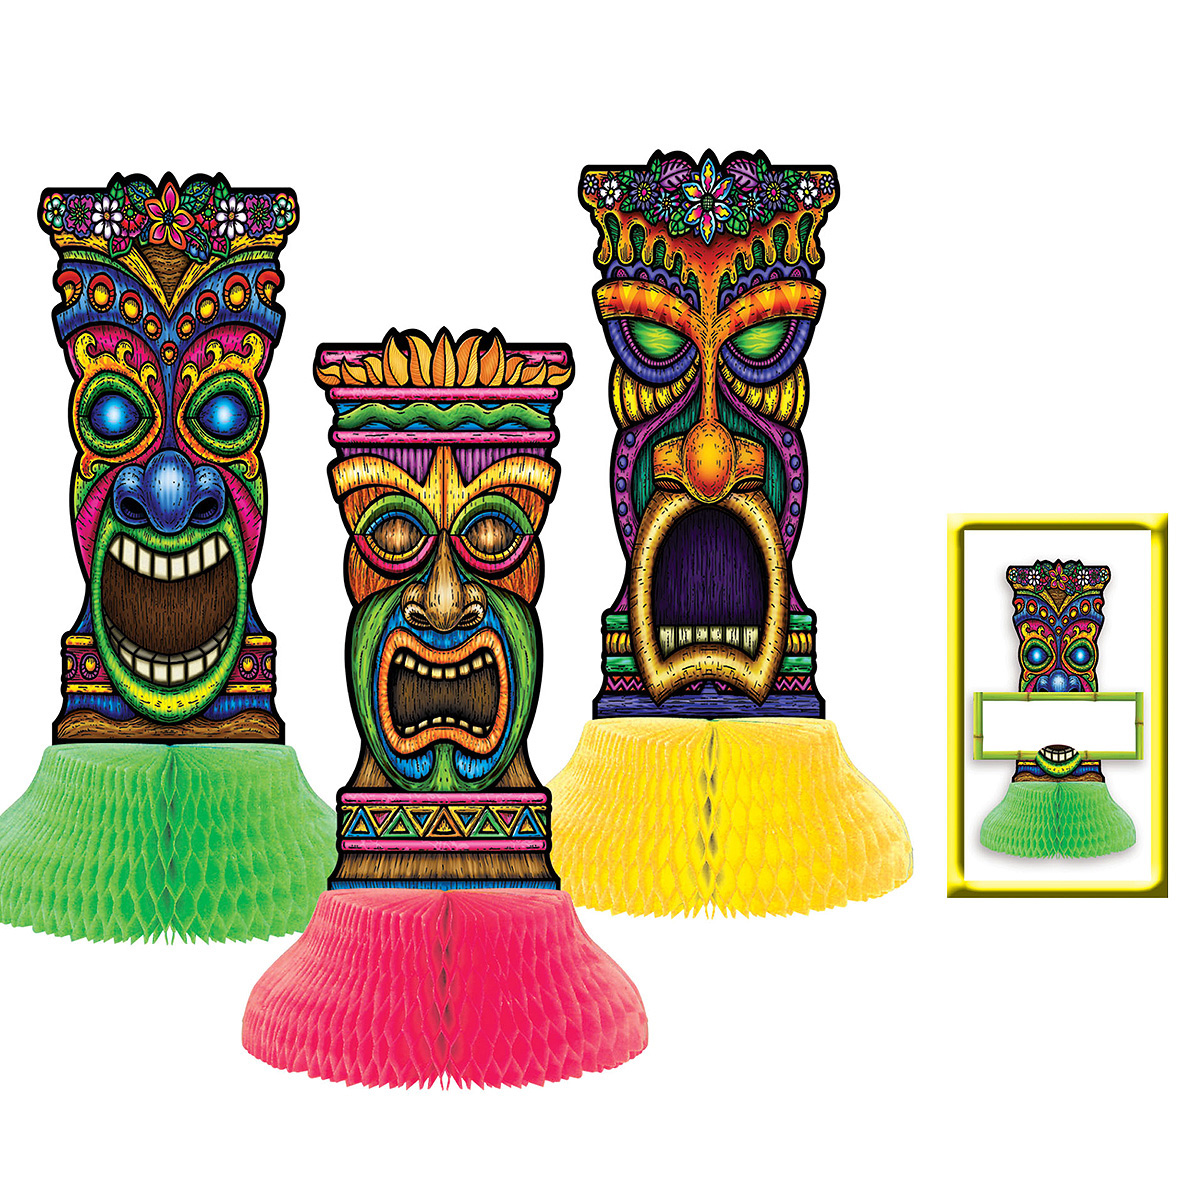 decorations. Decorative items like wooden tiki.